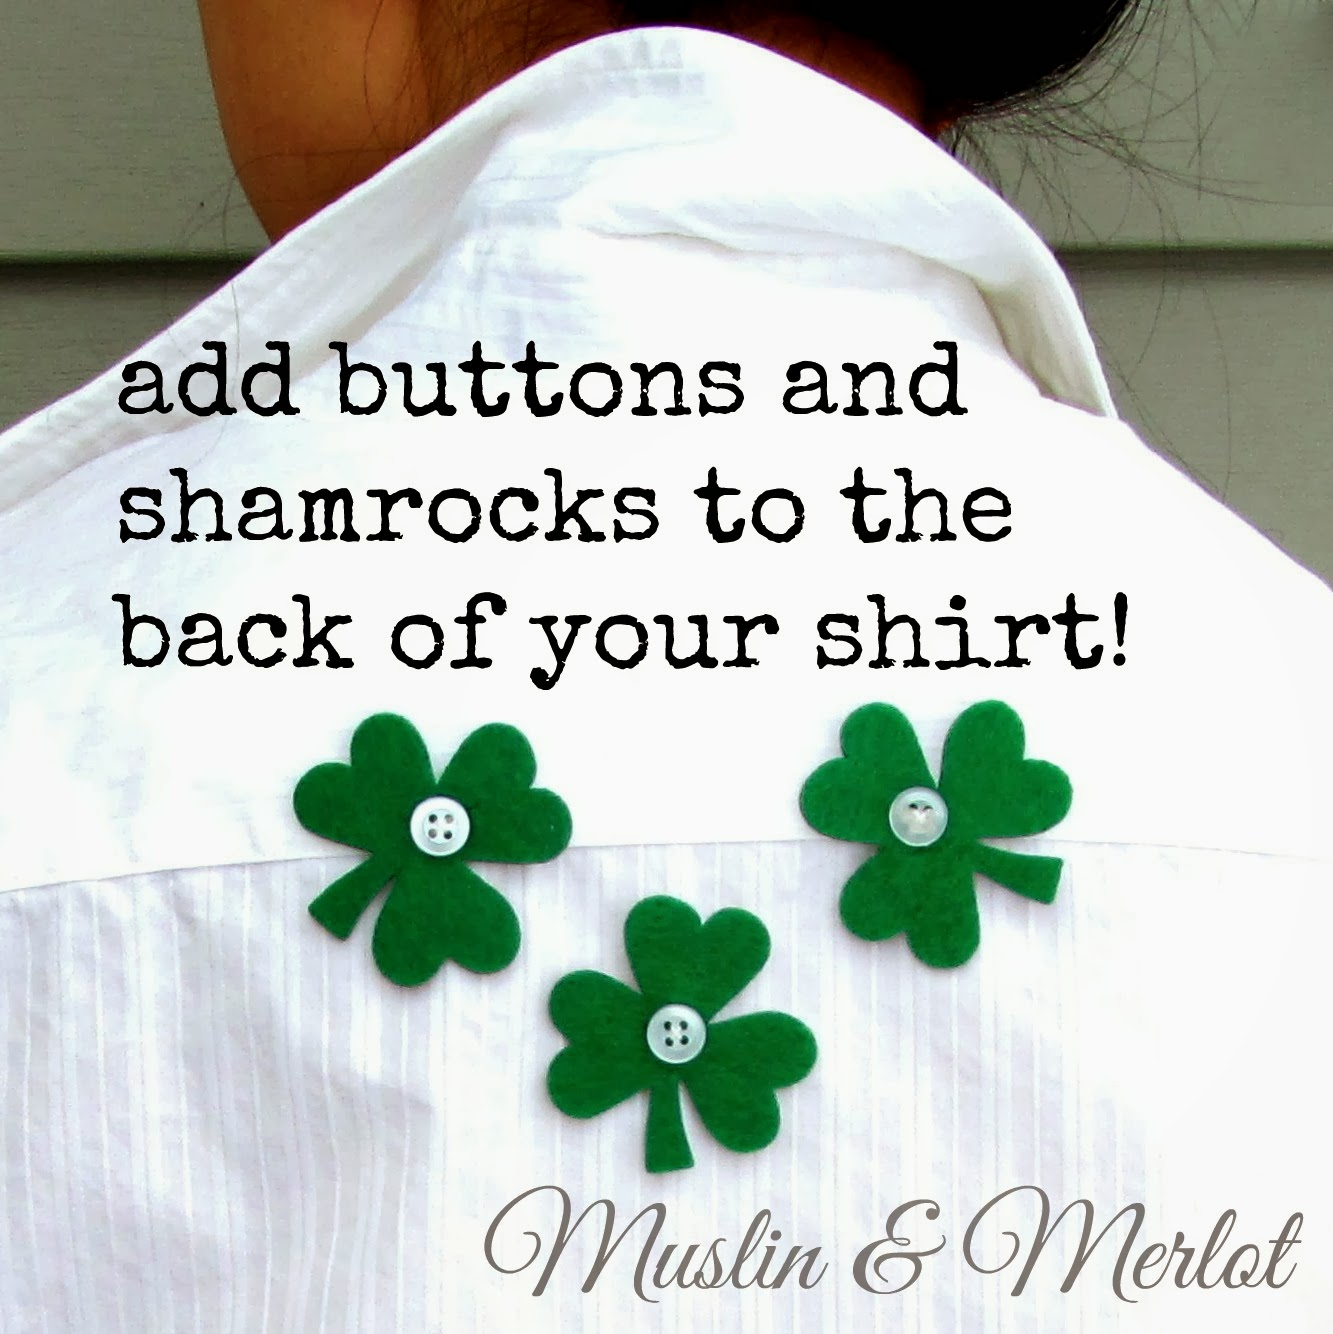 Add shamrocks to your shirt! by Muslin & Merlot